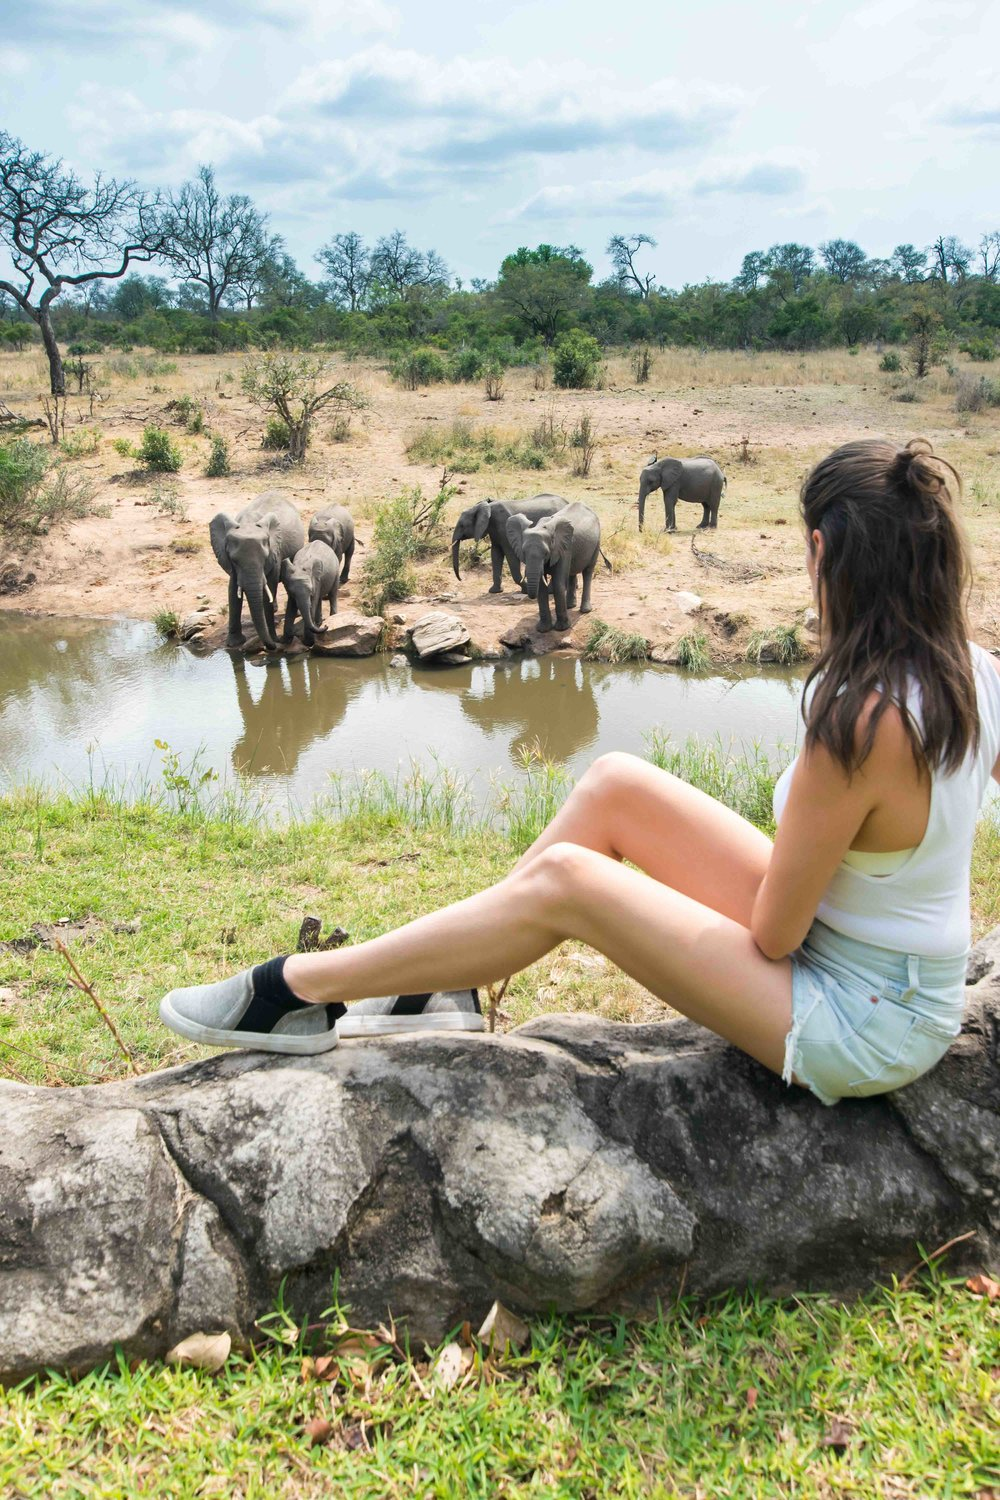 Hanging out with elephants at a luxury safari lodge in Kruger National Park